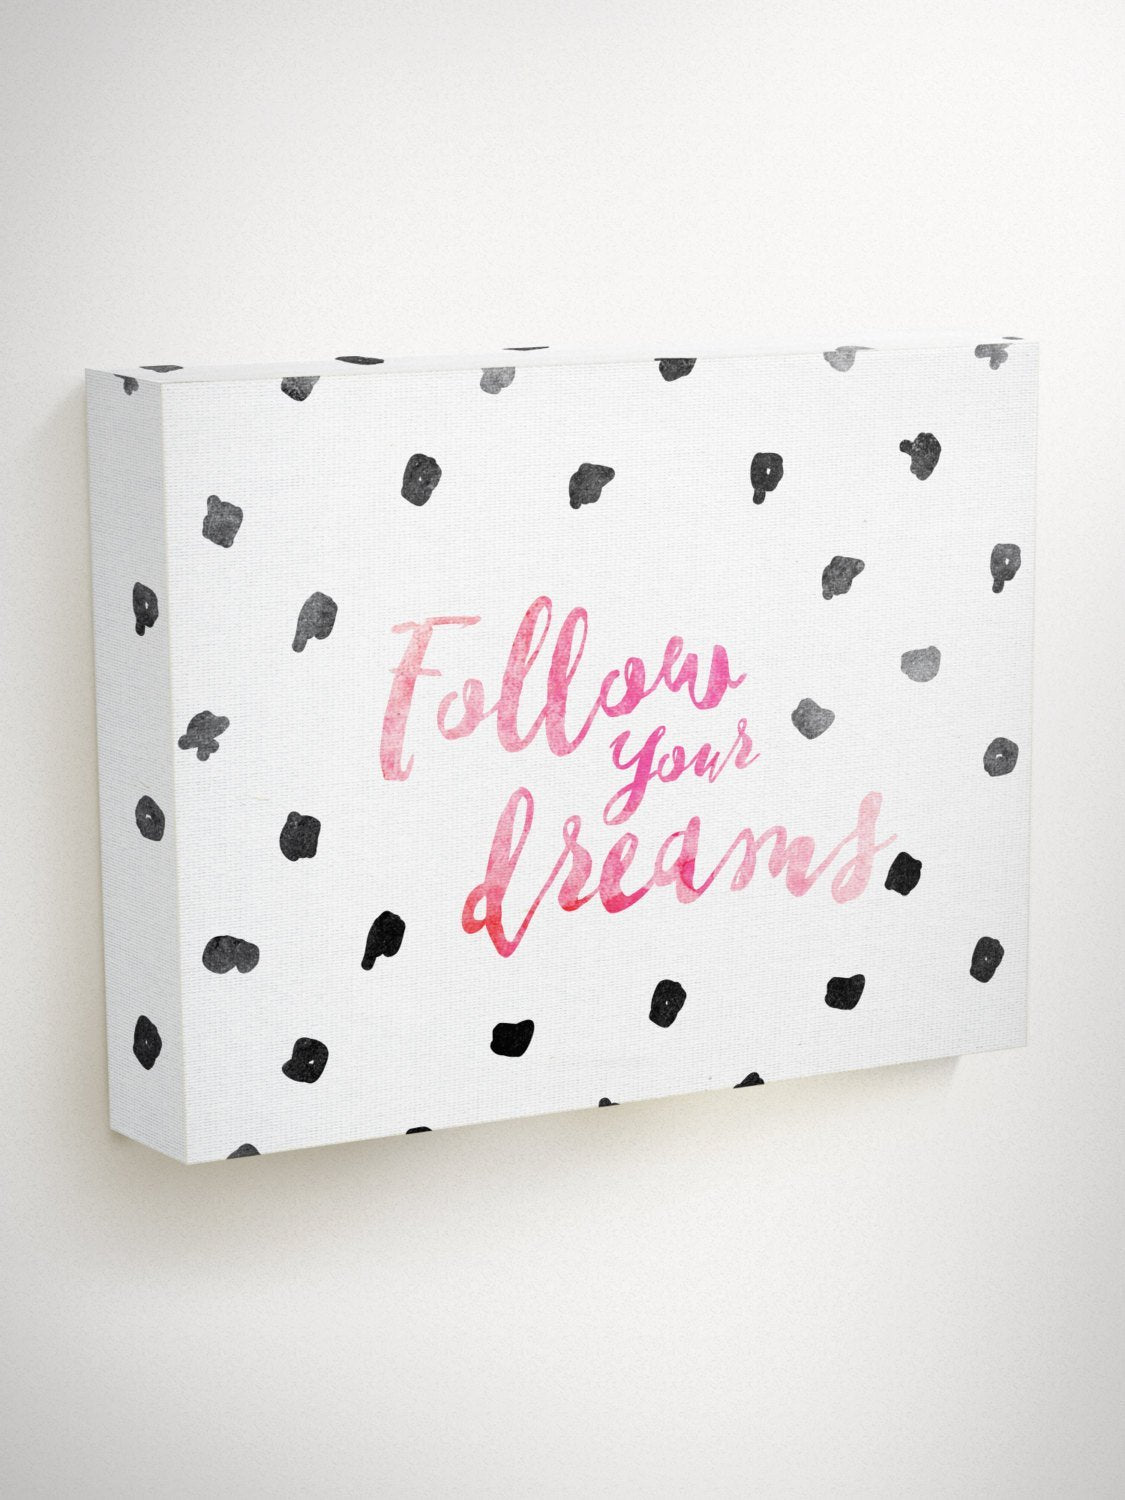 Follow Your Dreams, Black And White Canvas Wall Art, Inspirational Quotes For Kids, Red Canvas Art, Kids Canvas Wall Art, Hanging Canvas